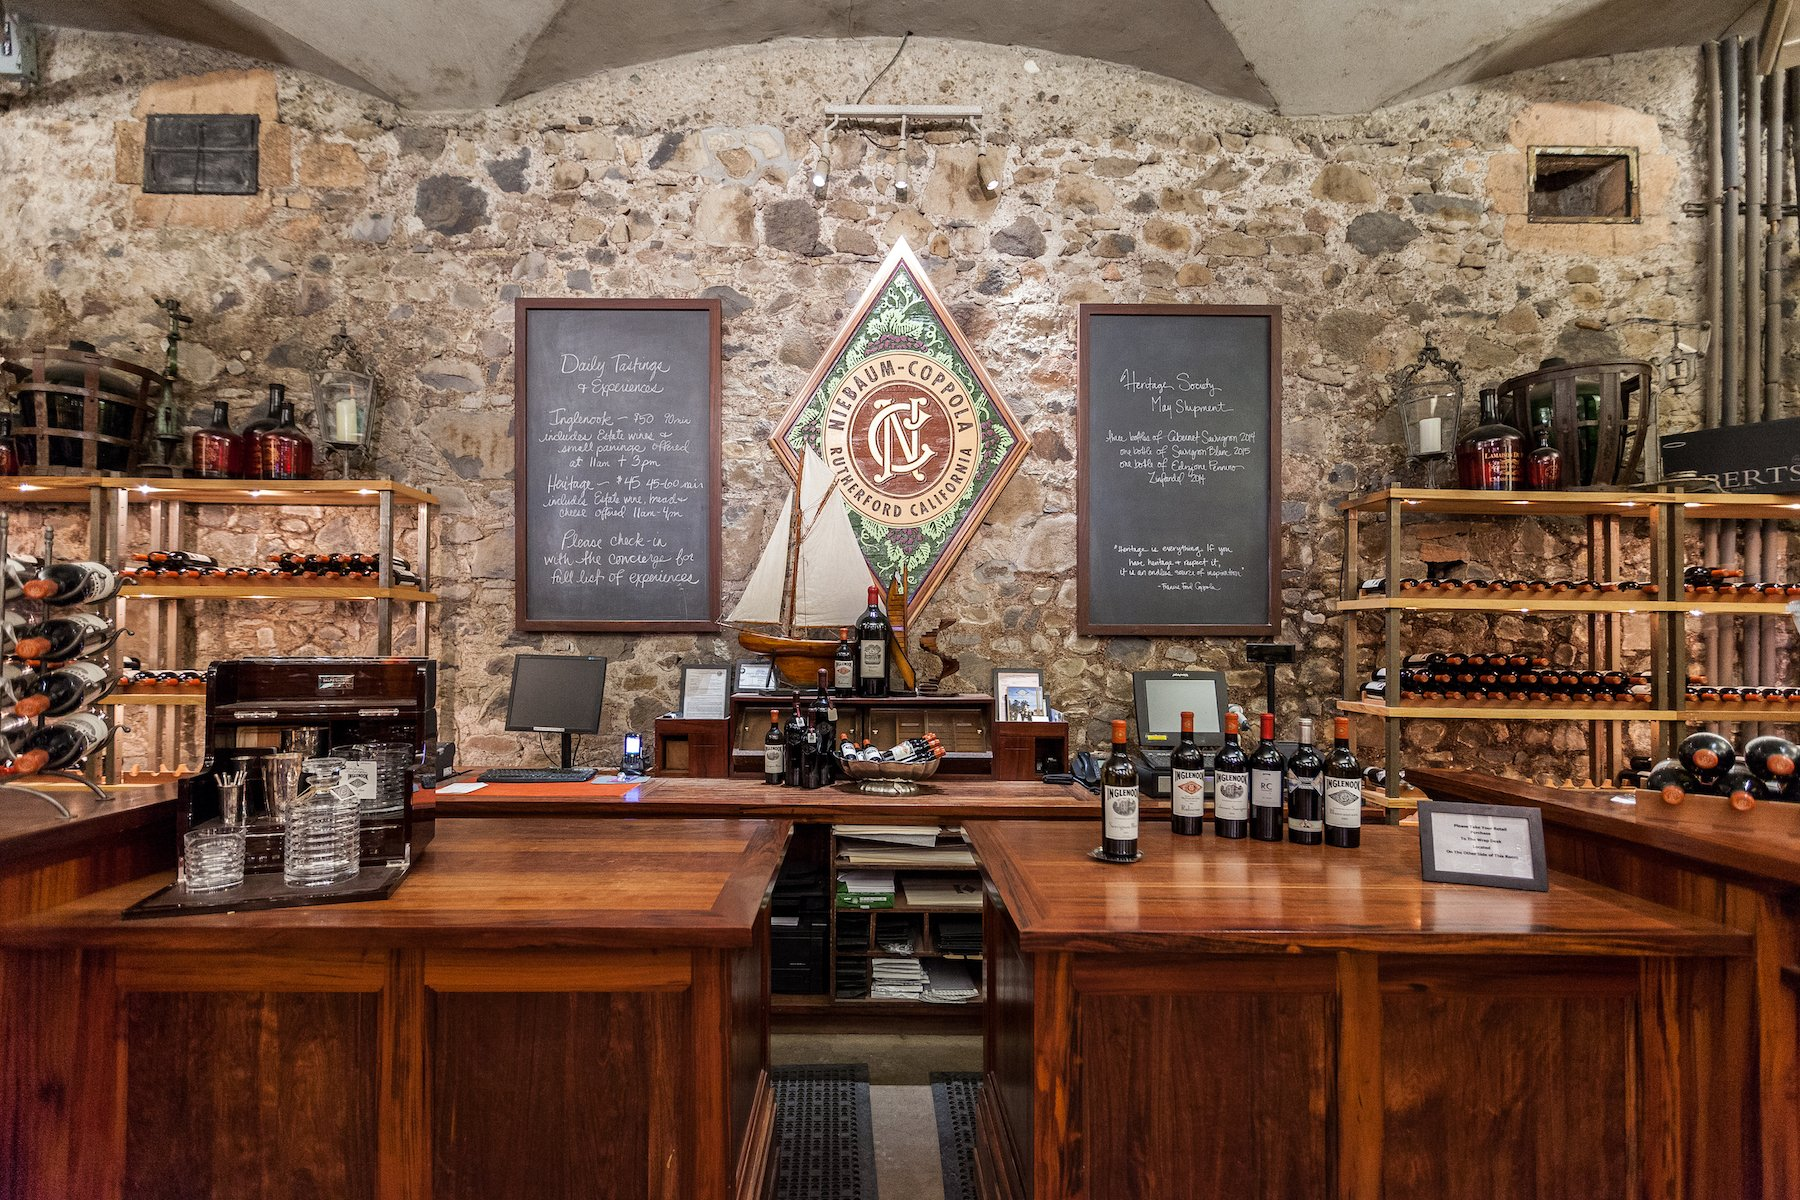 A wooden bar with bottles of wine on shelves at Inglenook winery in Napa Valley